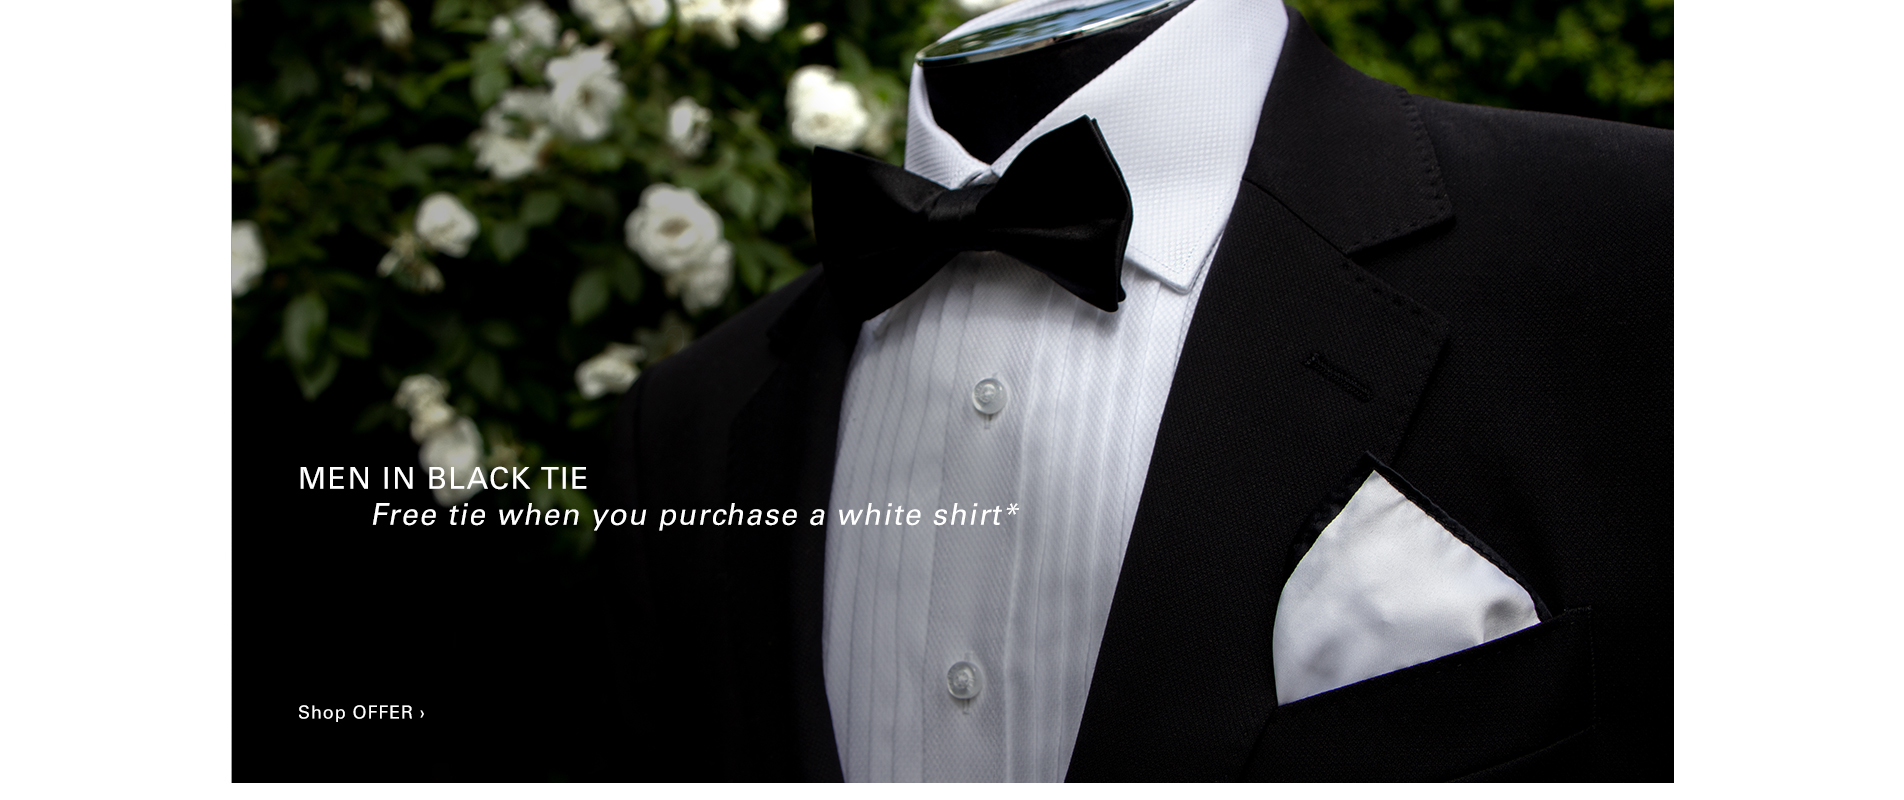 Men In Black Tie - Free tie when your purchase a white shirt*